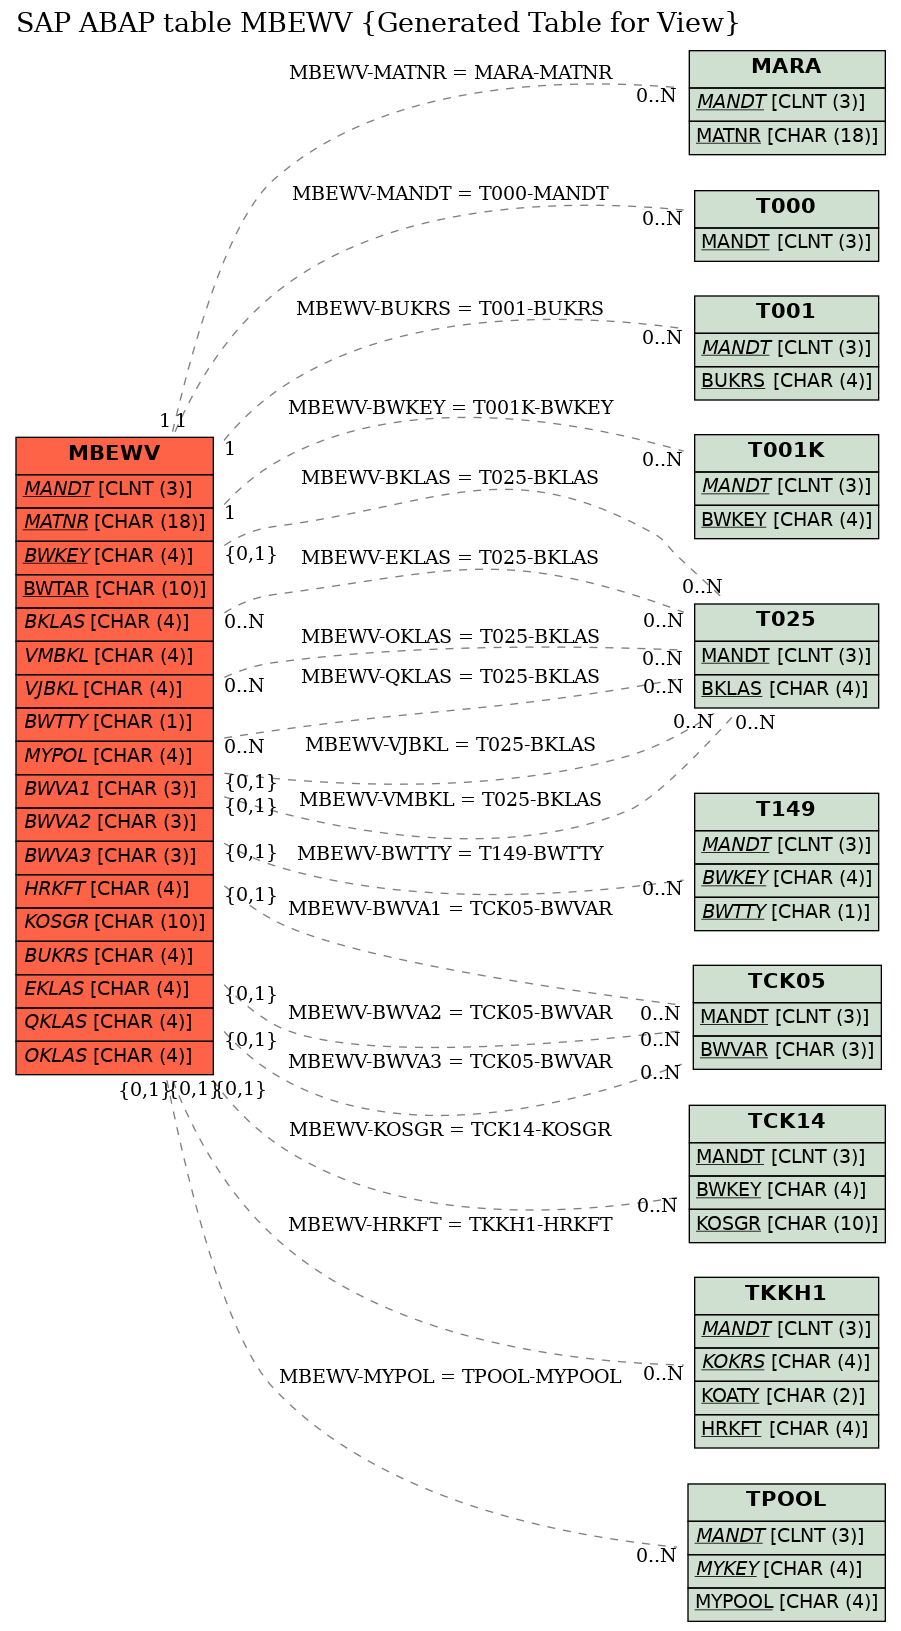 E-R Diagram for table MBEWV (Generated Table for View)